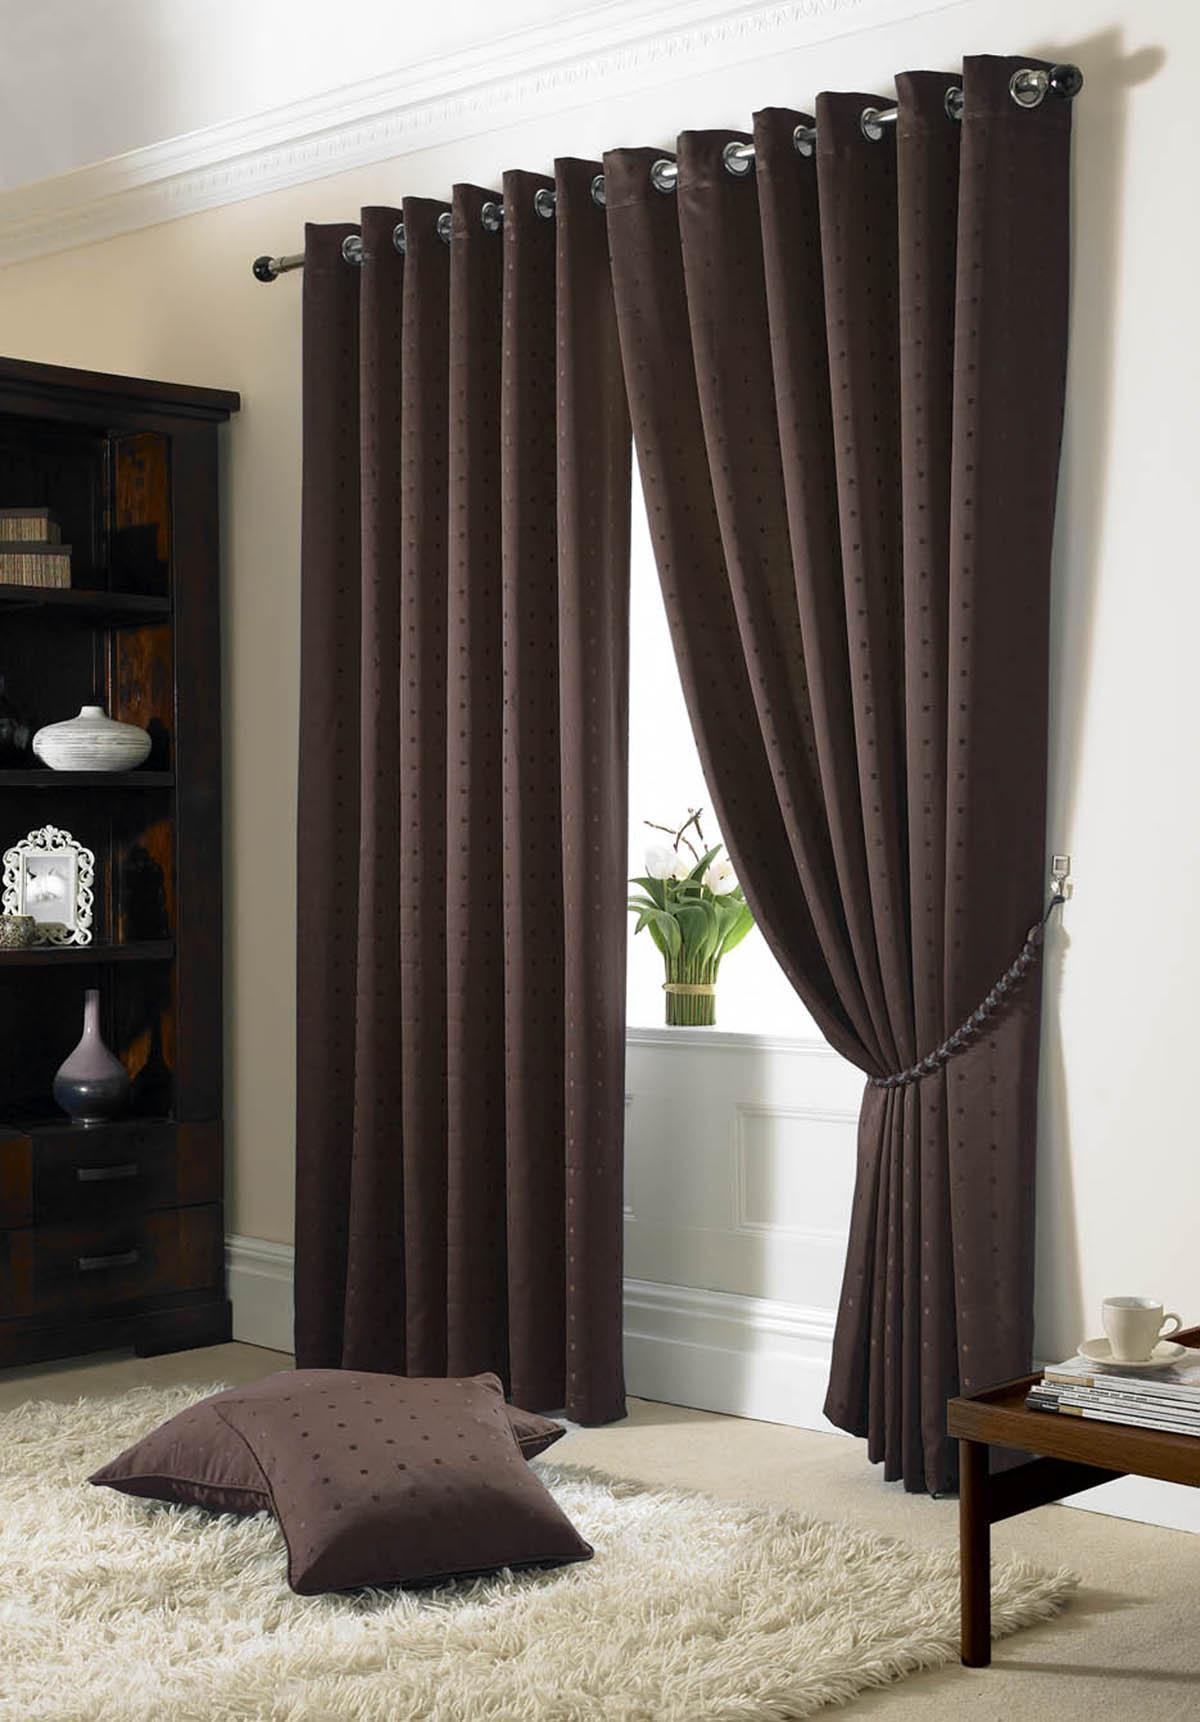 Stockists of Chocolate Madison Eyelet Lined Curtains